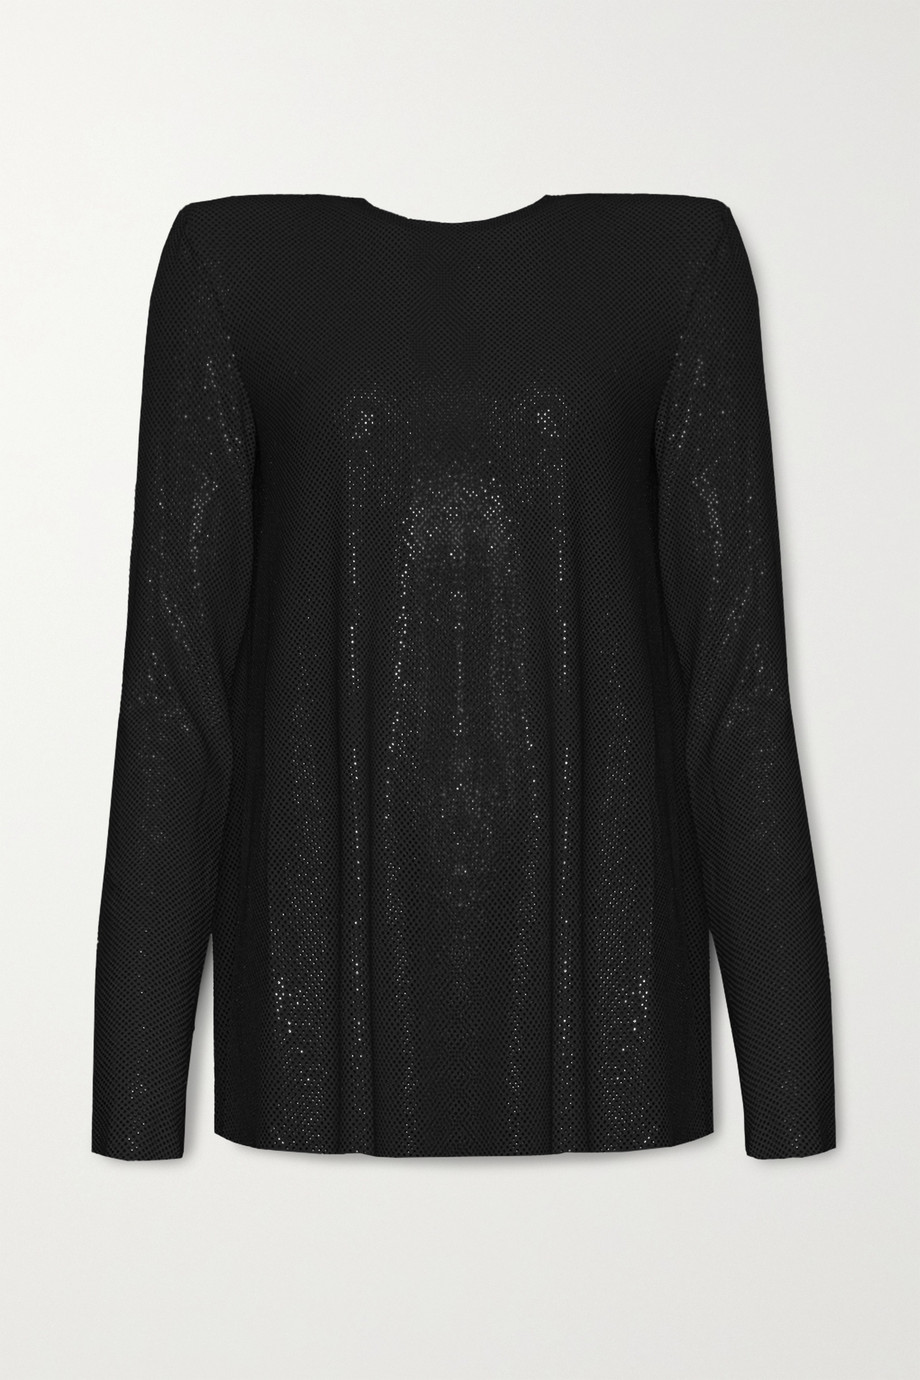 Alexandre Vauthier Crystal-embellished stretch-jersey top